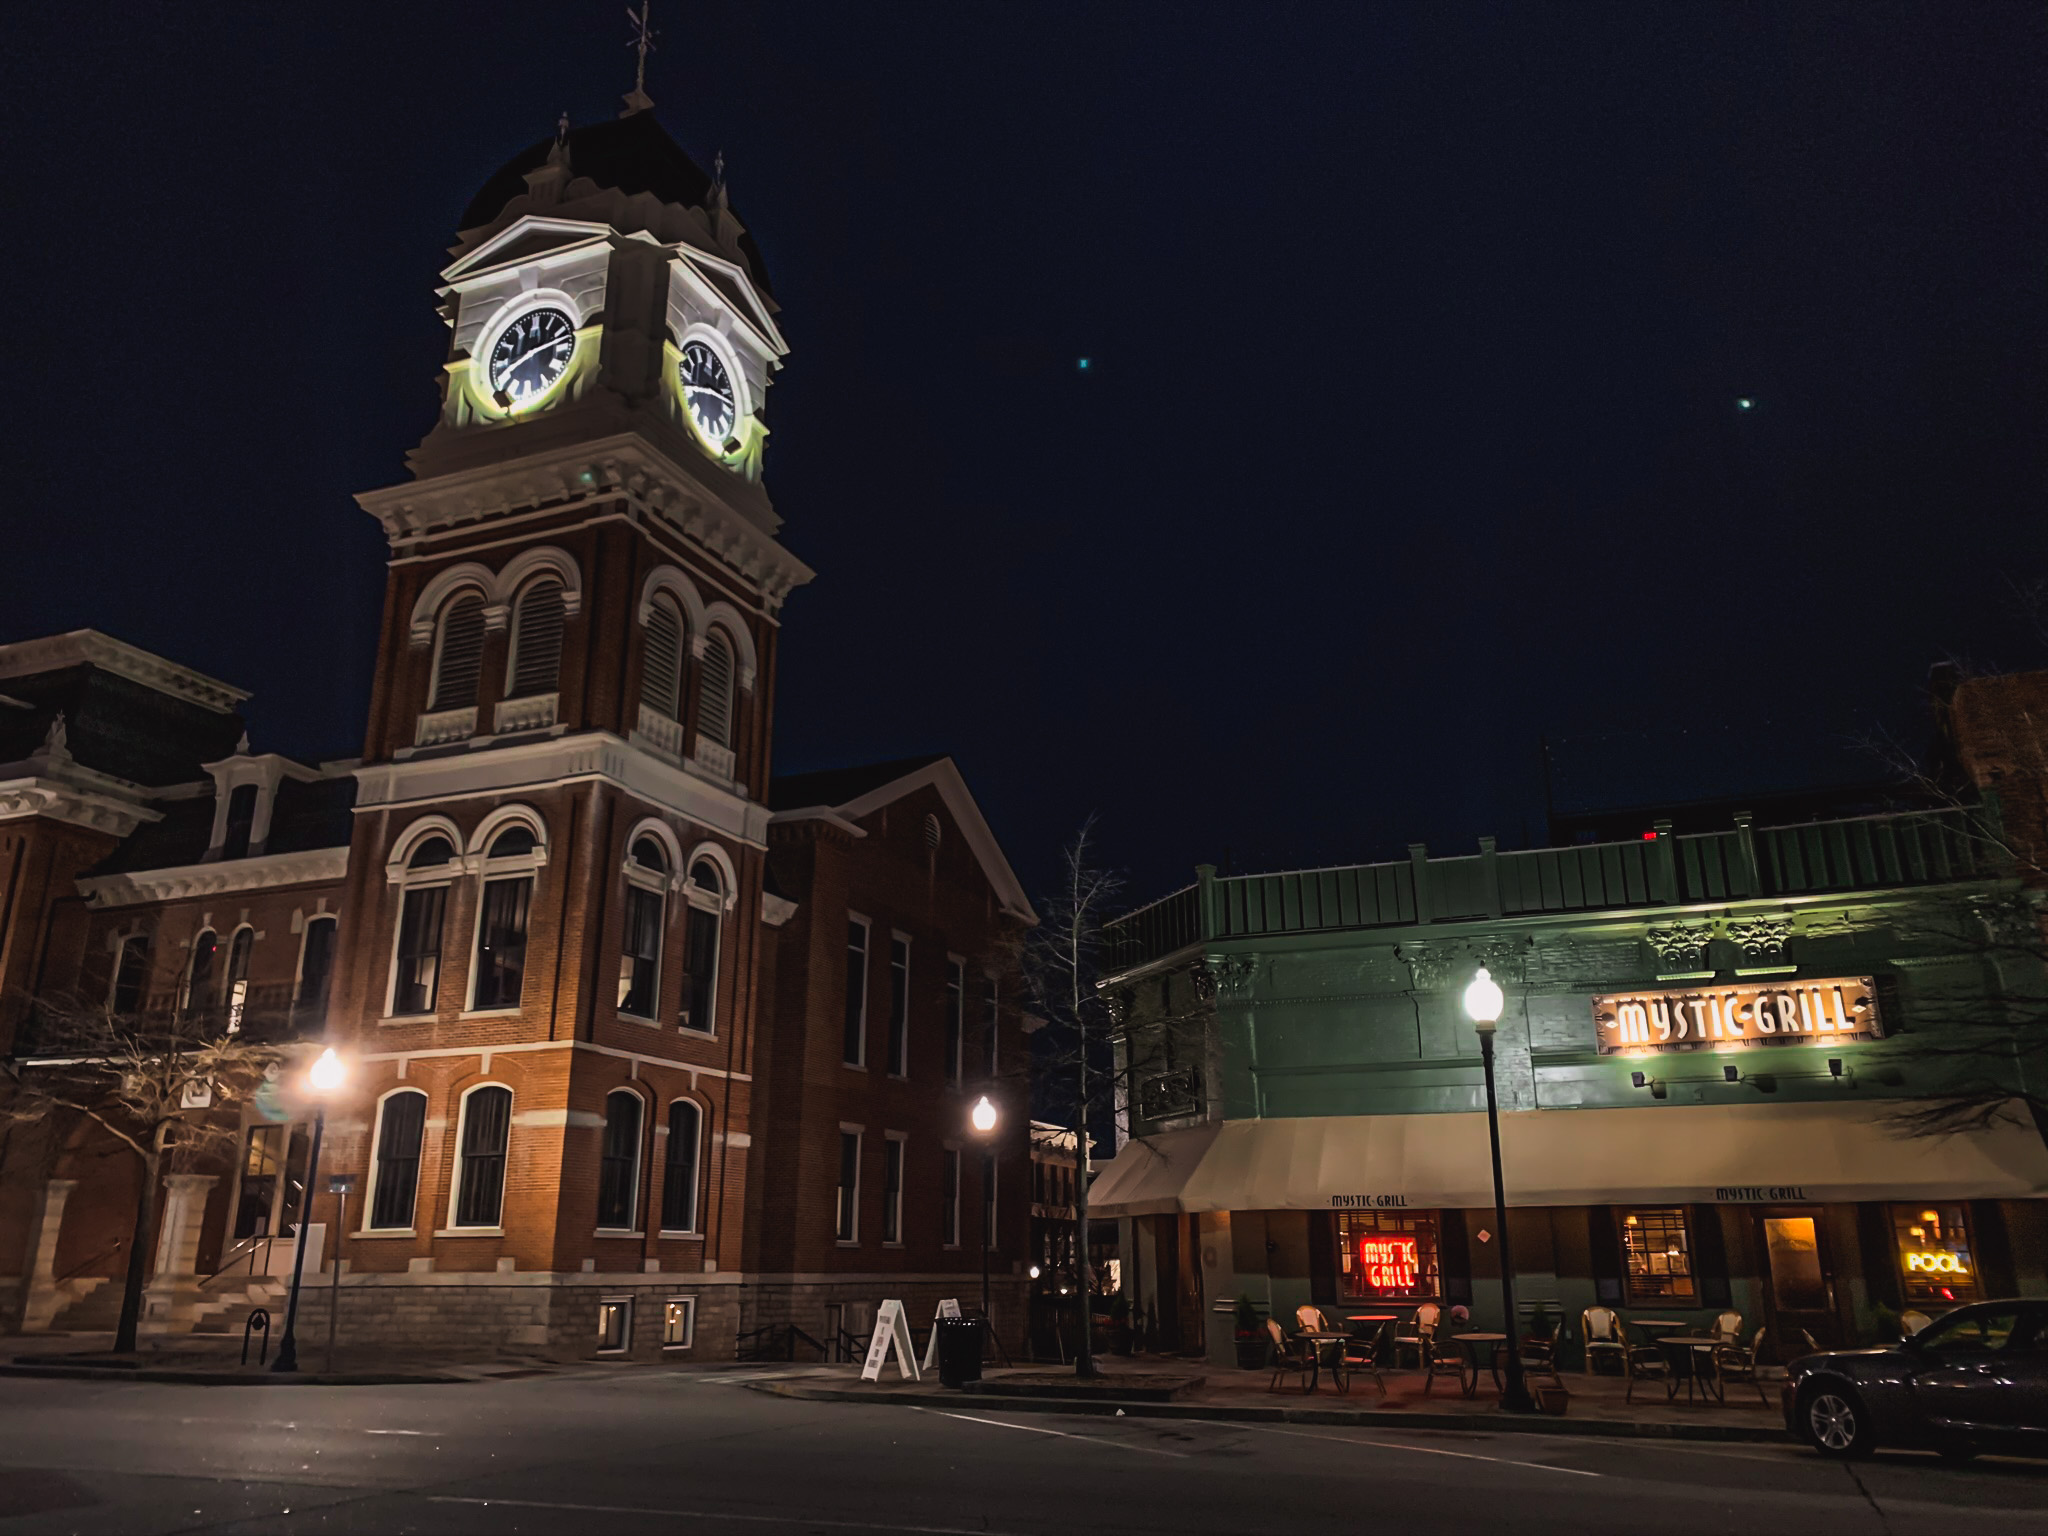 the clock tower and mystic grill of Mystic Falls